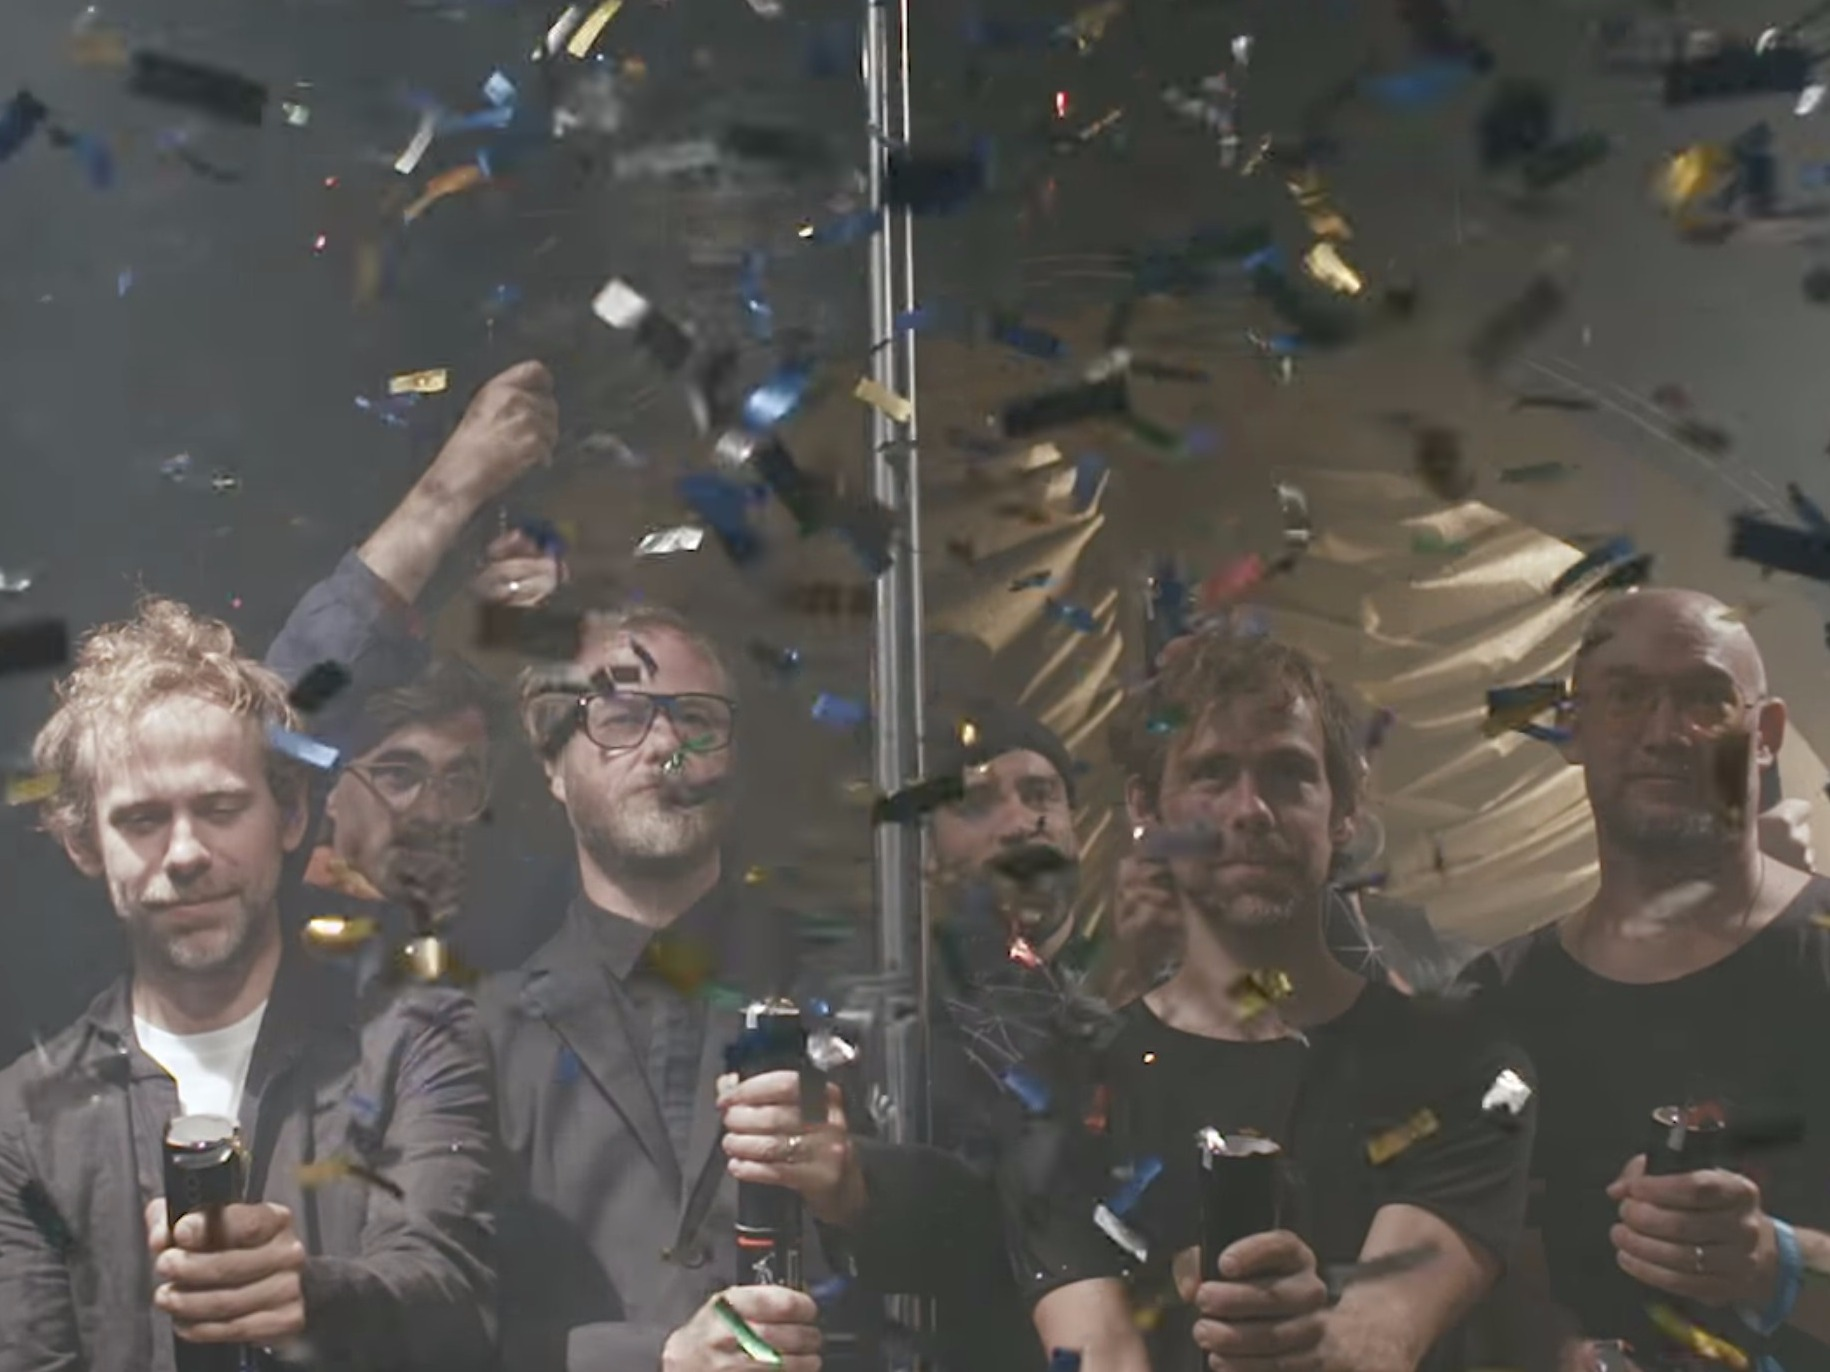 The National Hosts The Party Of The Year In Latest Video